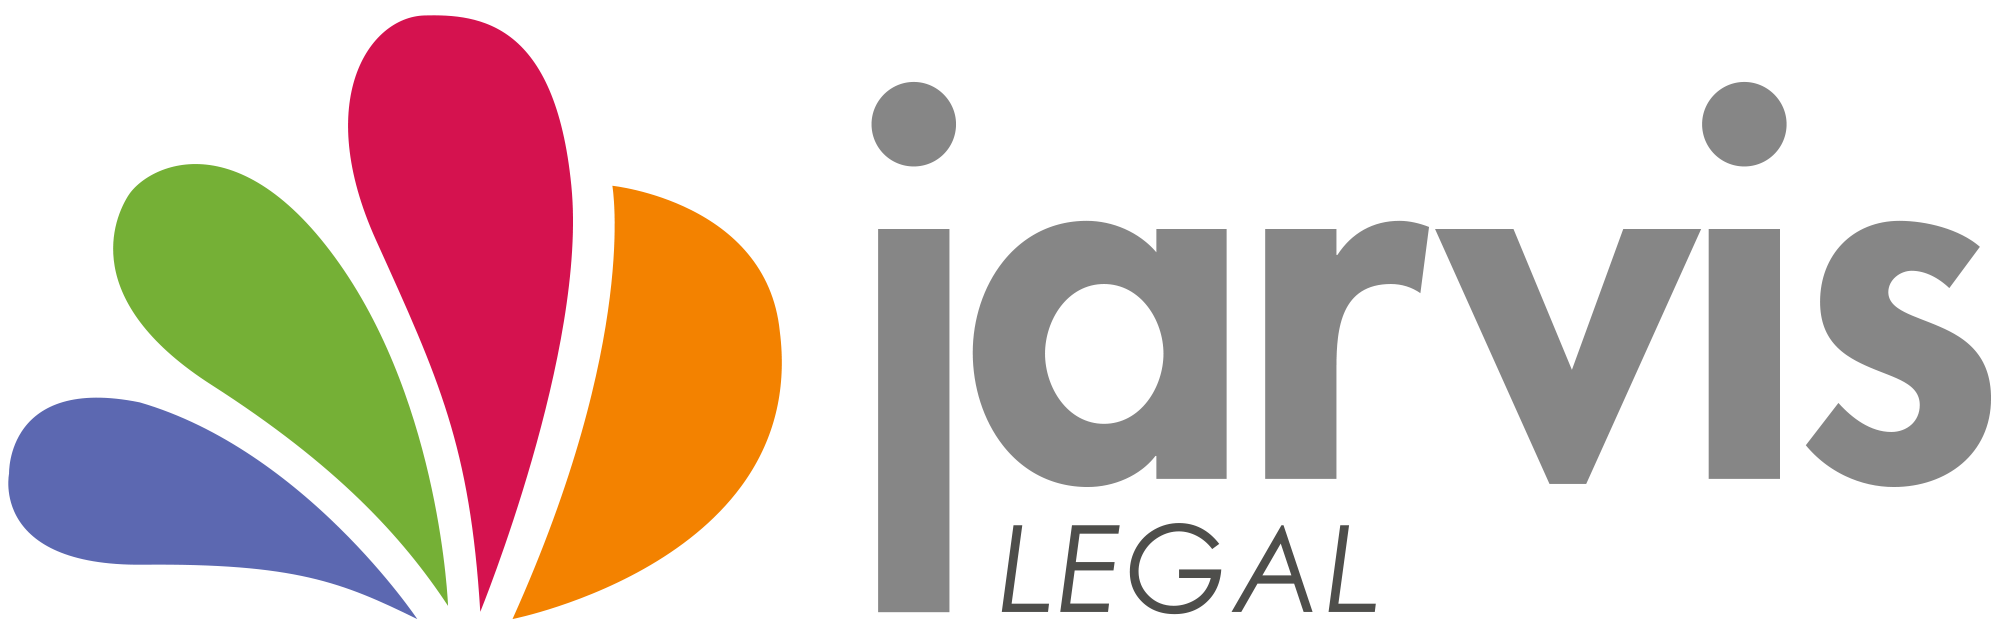 logo_jarvis-legal